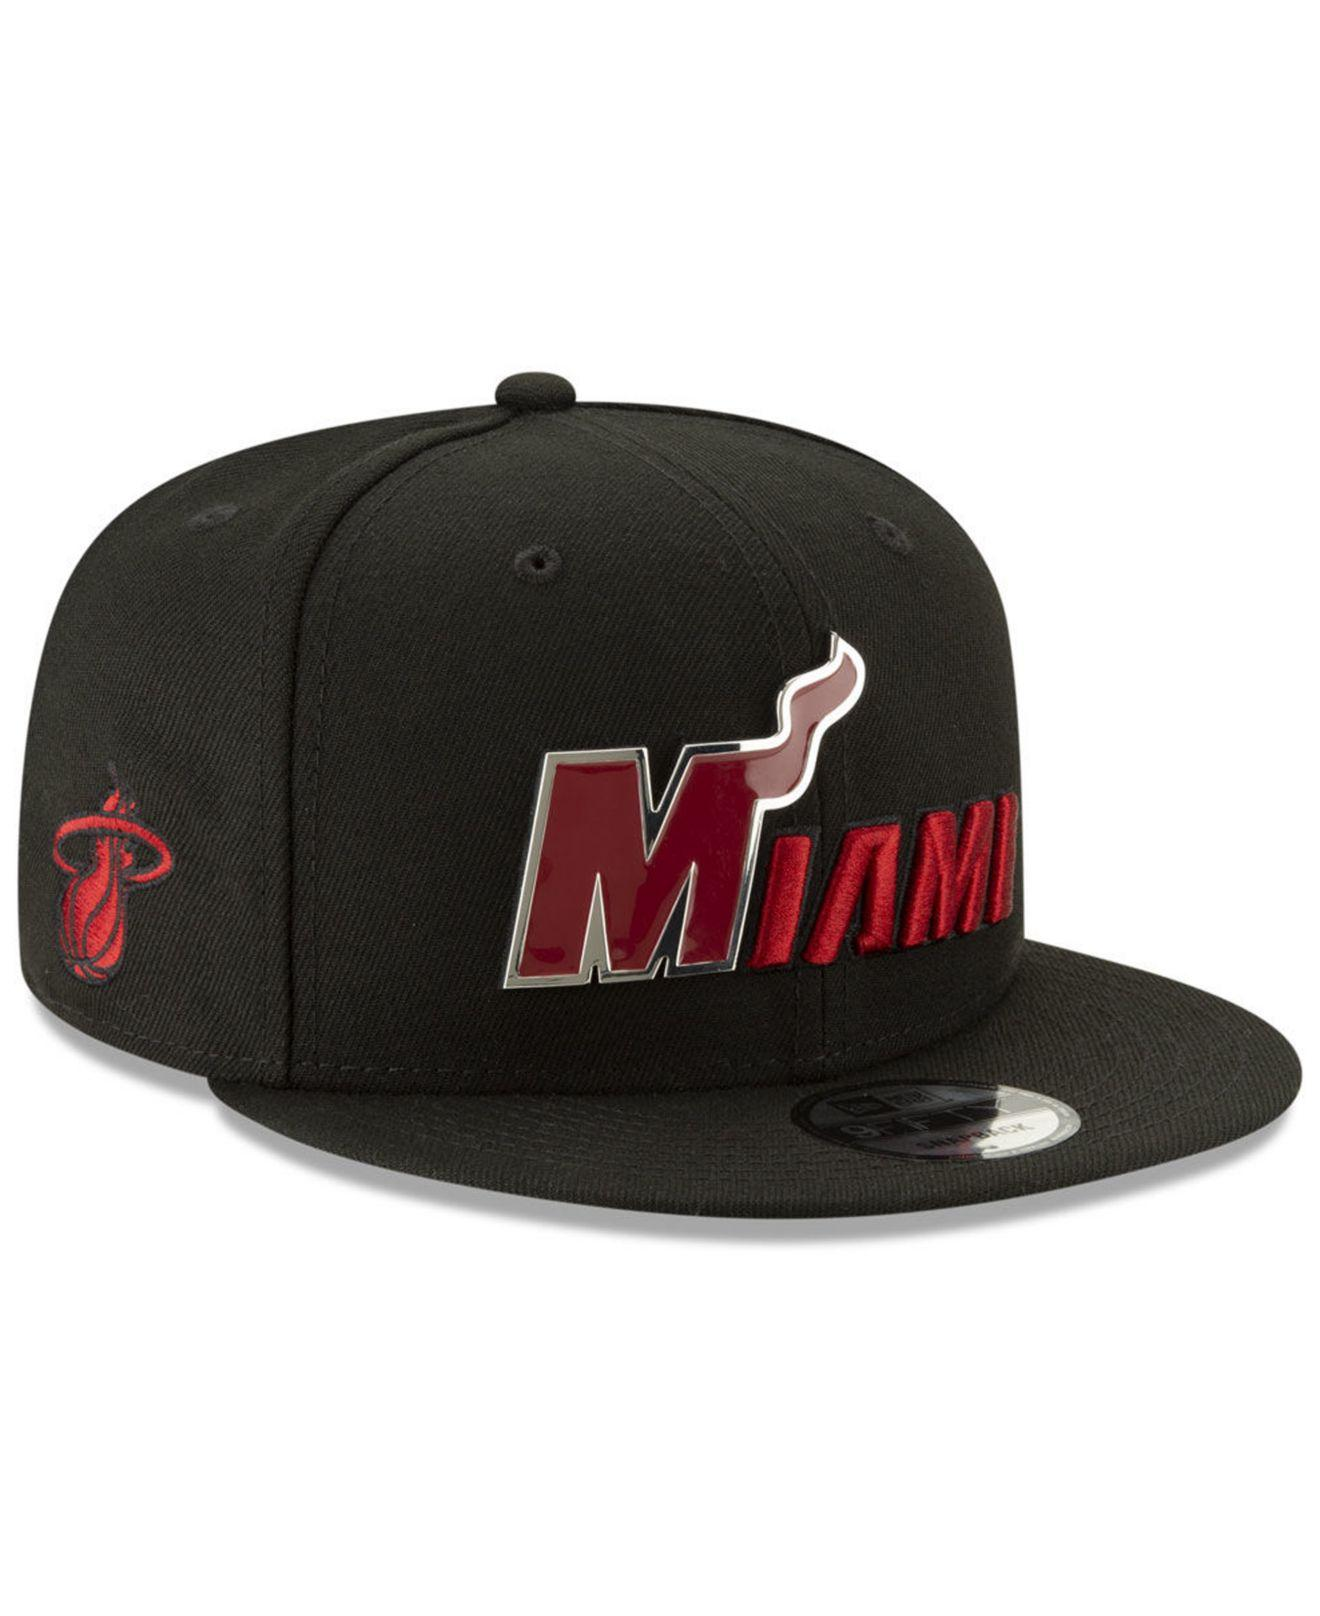 new product 0b94c 7d300 Lyst - Ktz Miami Heat Enamel Script 9fifty Snapback Cap in Black for Men